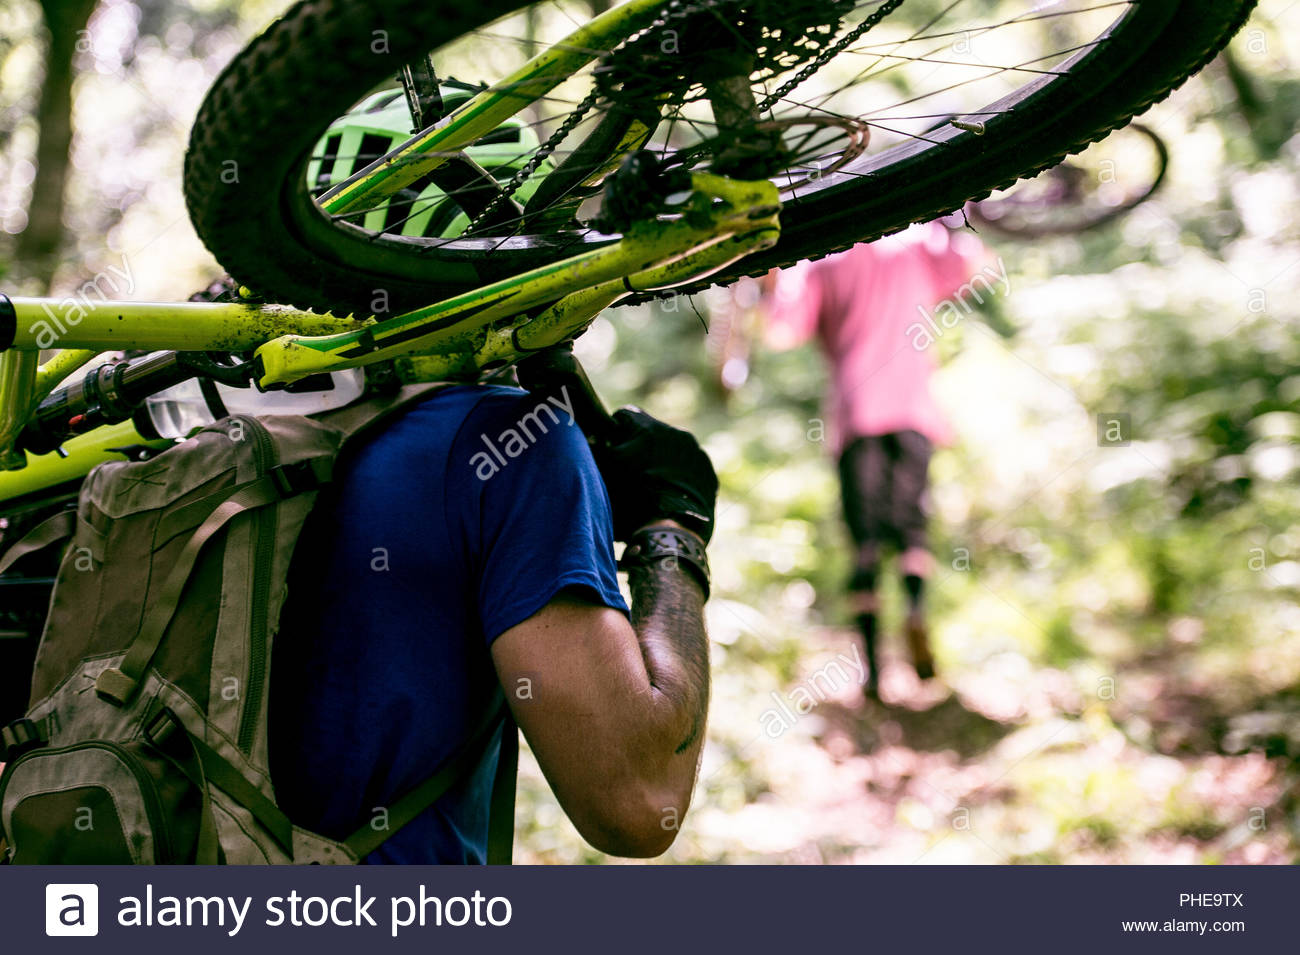 Man carrying his mountain bike in forest - Stock Image